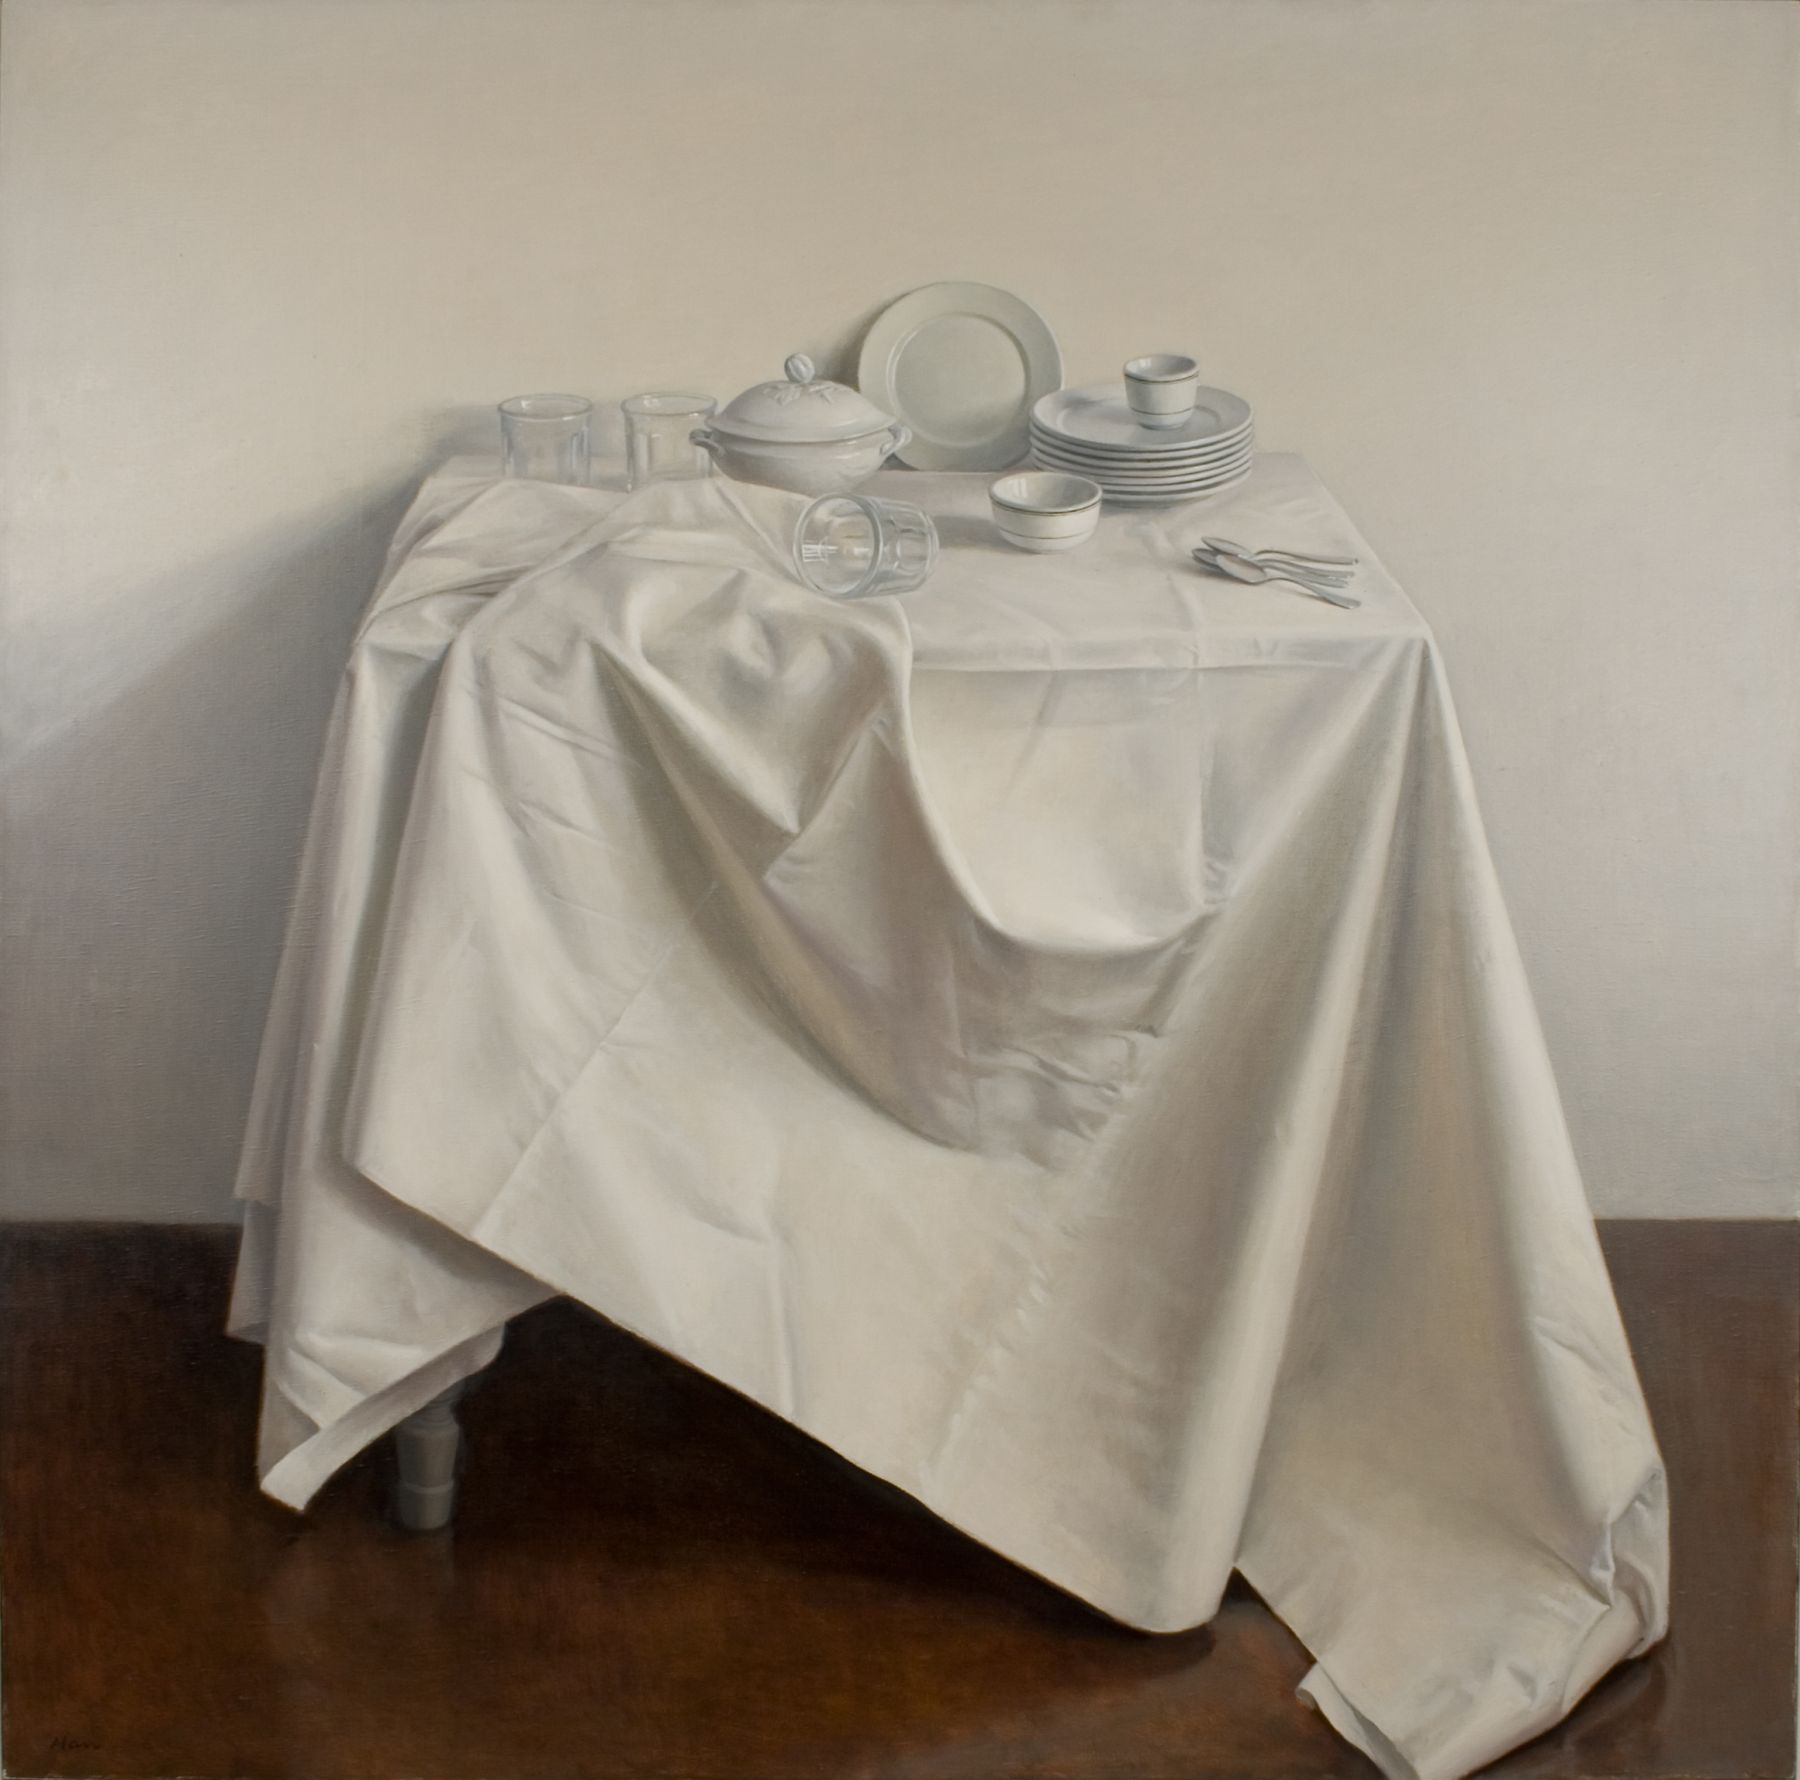 Raymond Han, Still Life with Draped Tablecloth, 1981 oil on canvas 52 x 52 inches